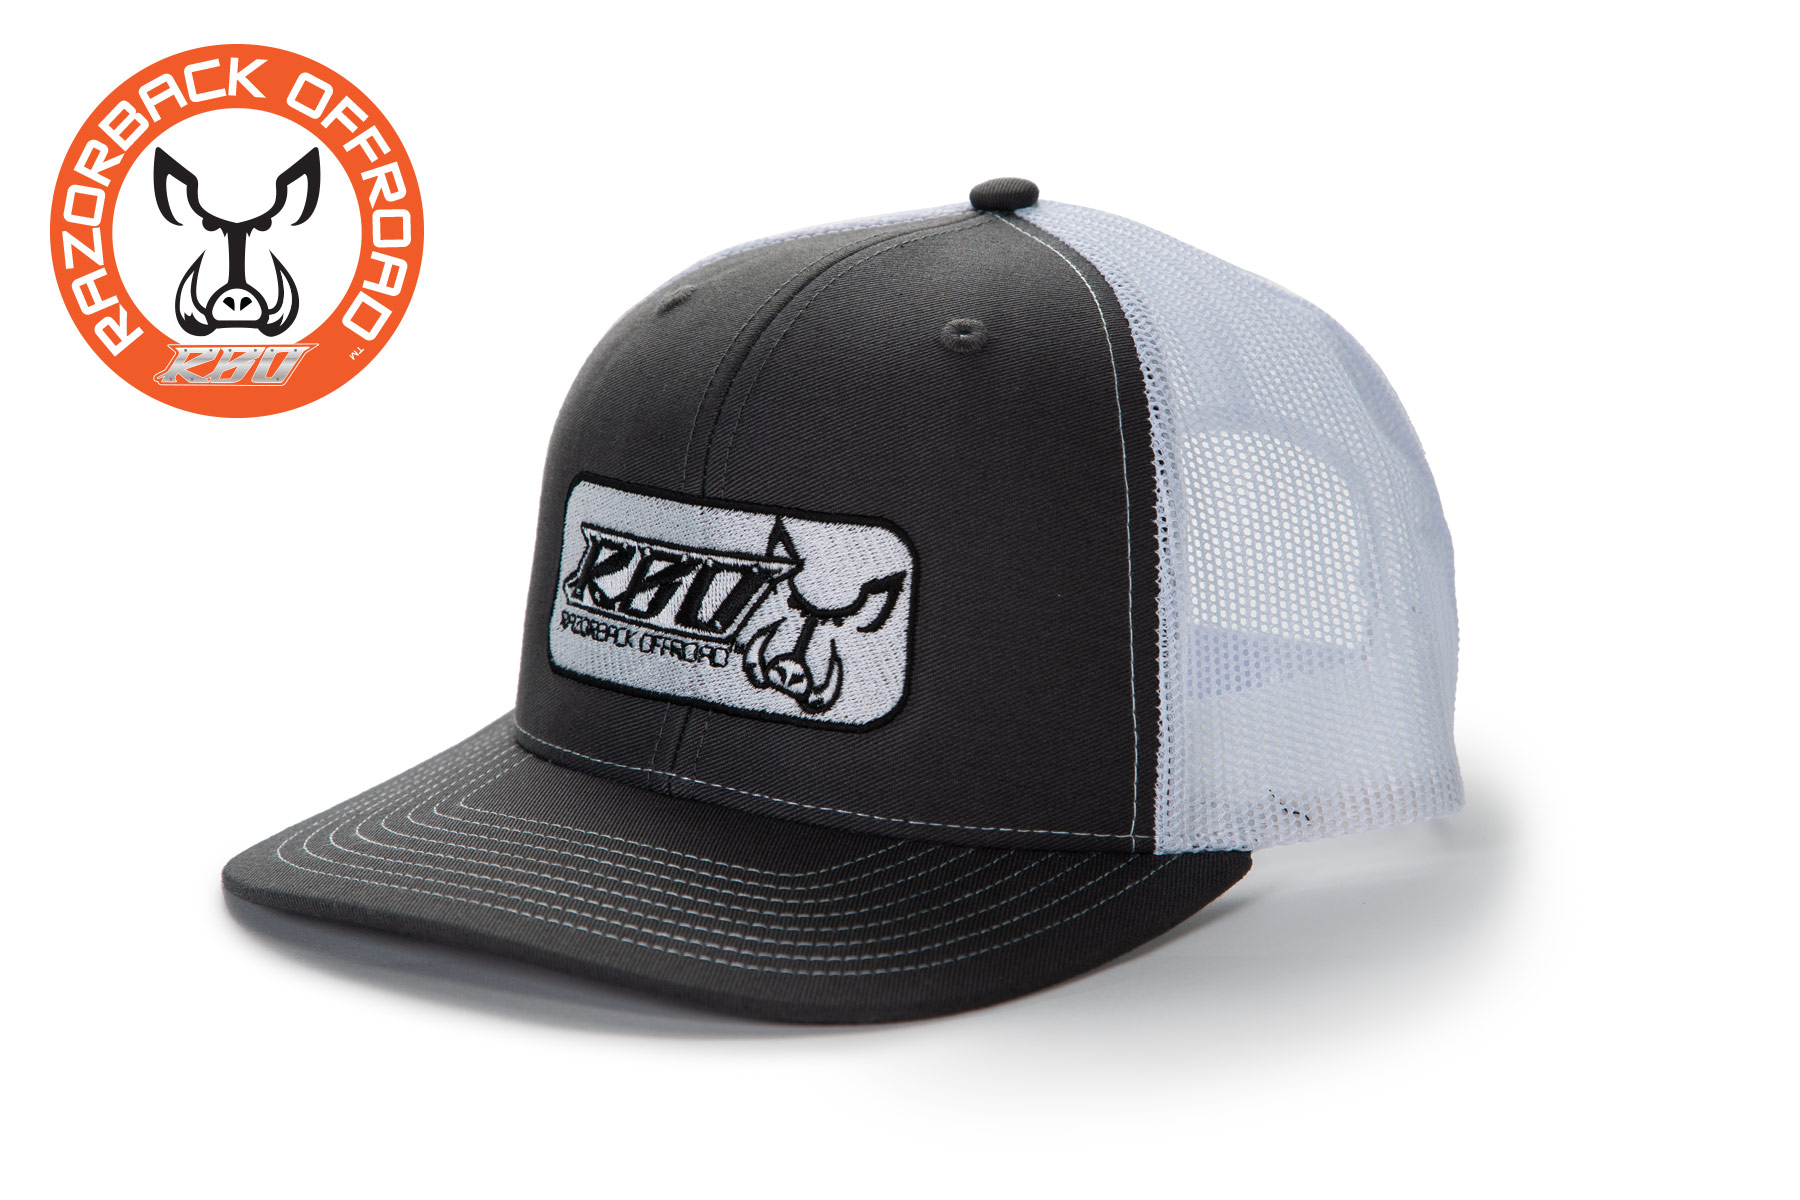 RBO7023-Snap-Back-Grey-White-1